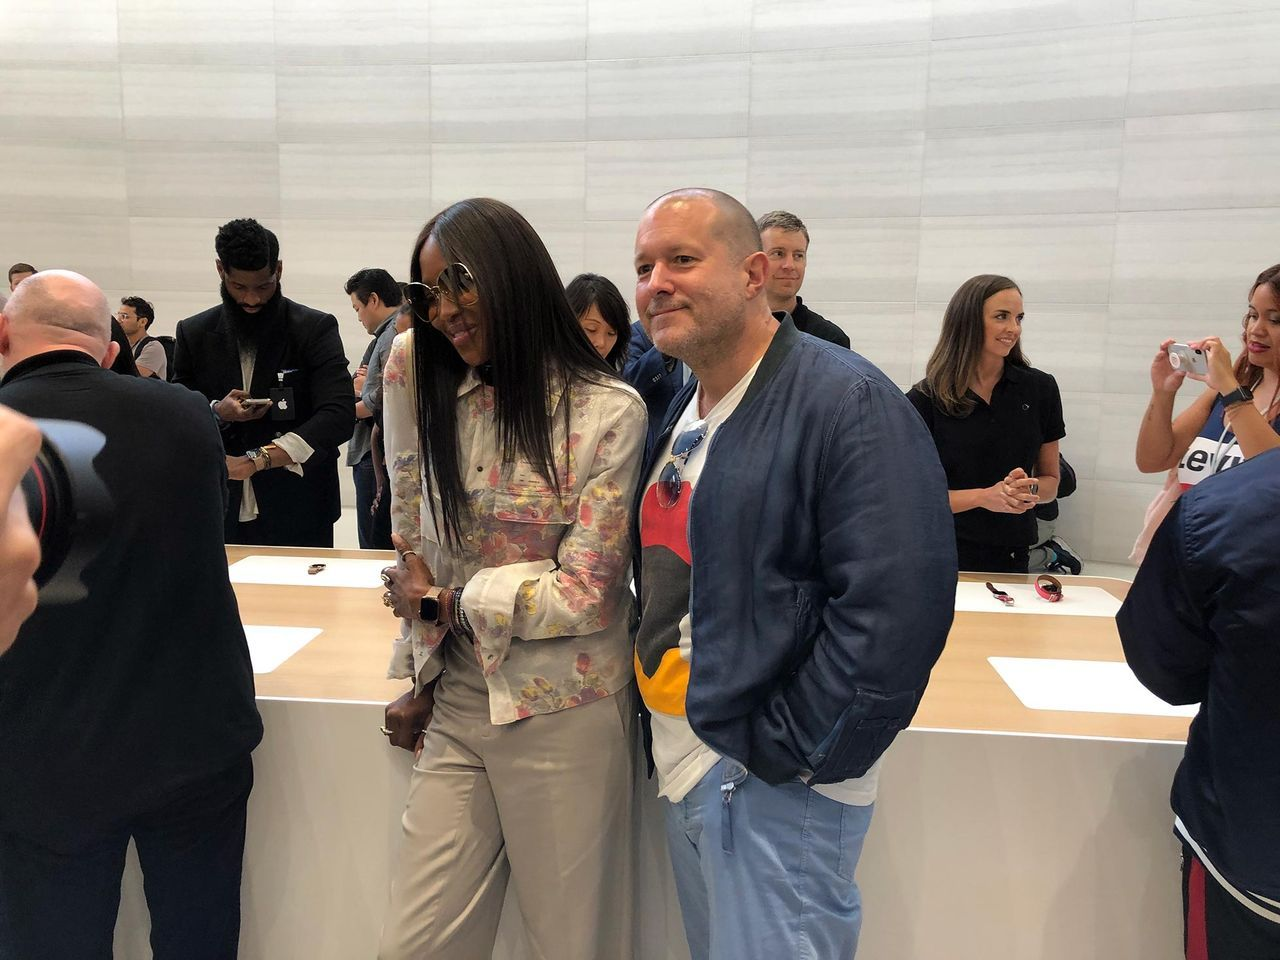 Nu har Jony Ive officiellt lämnat Apple